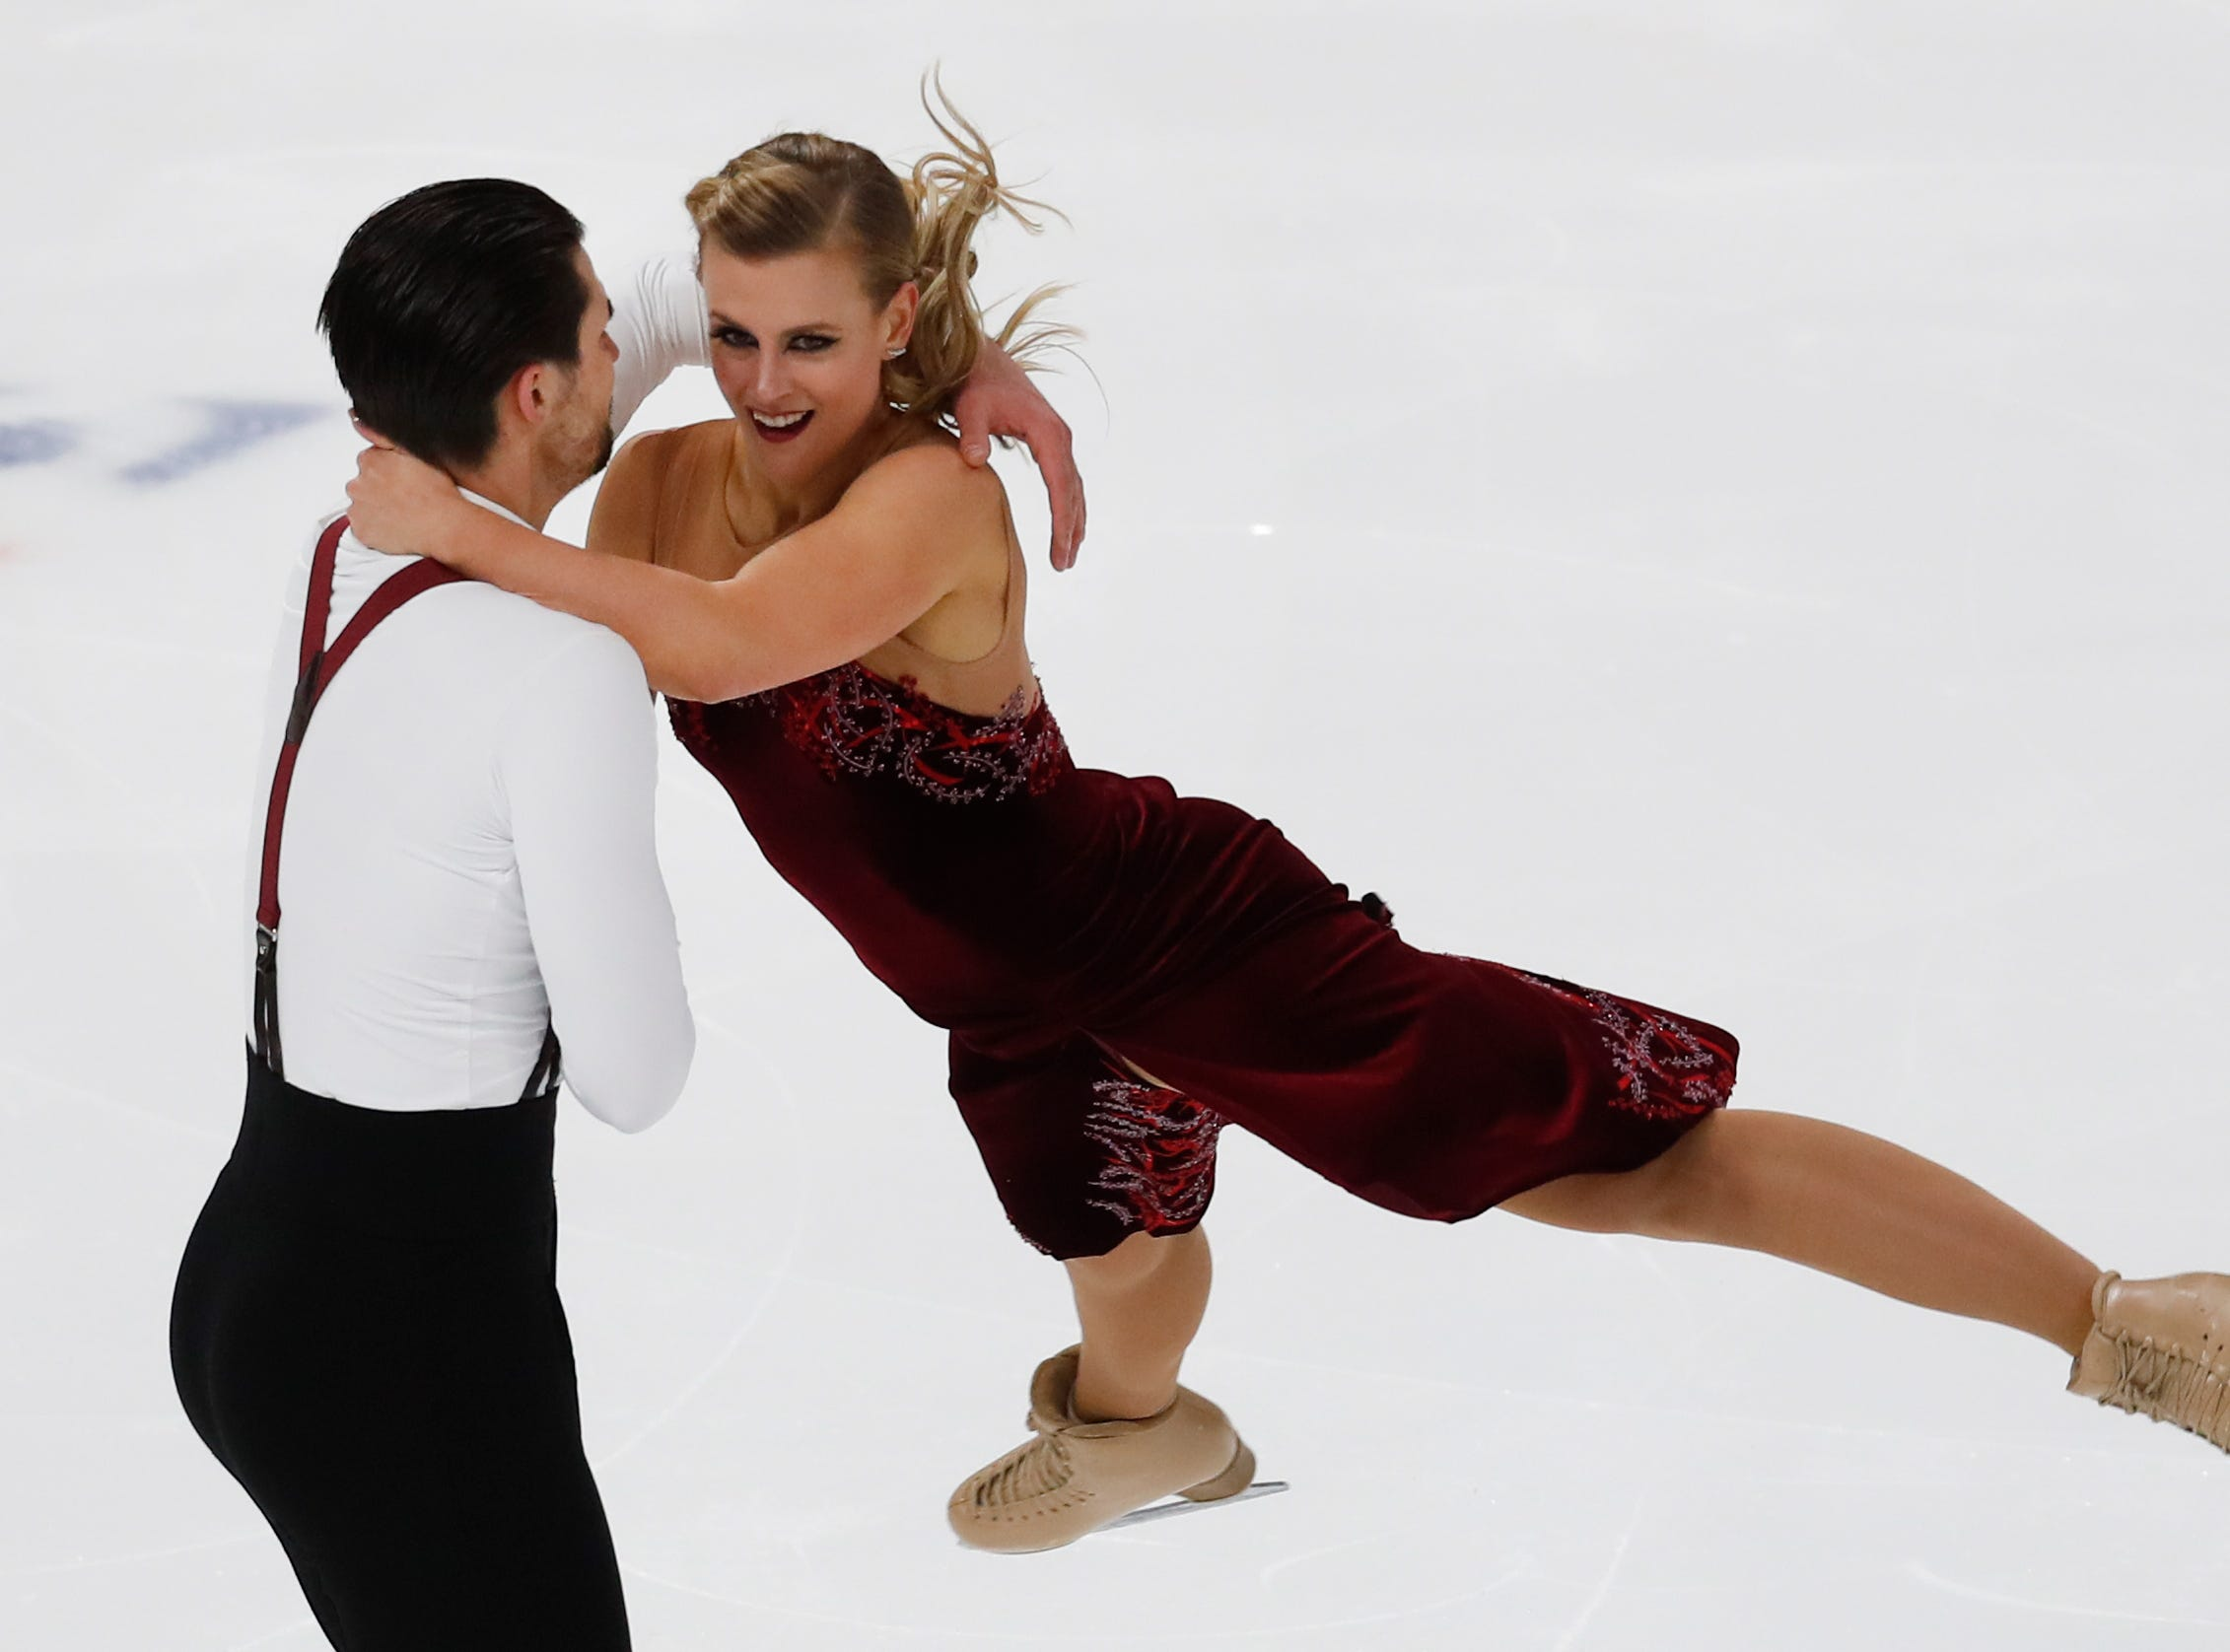 Madison Hubbell and Zachary Donohue perform their rhythm dance program at the U.S. Figure Skating Championships.